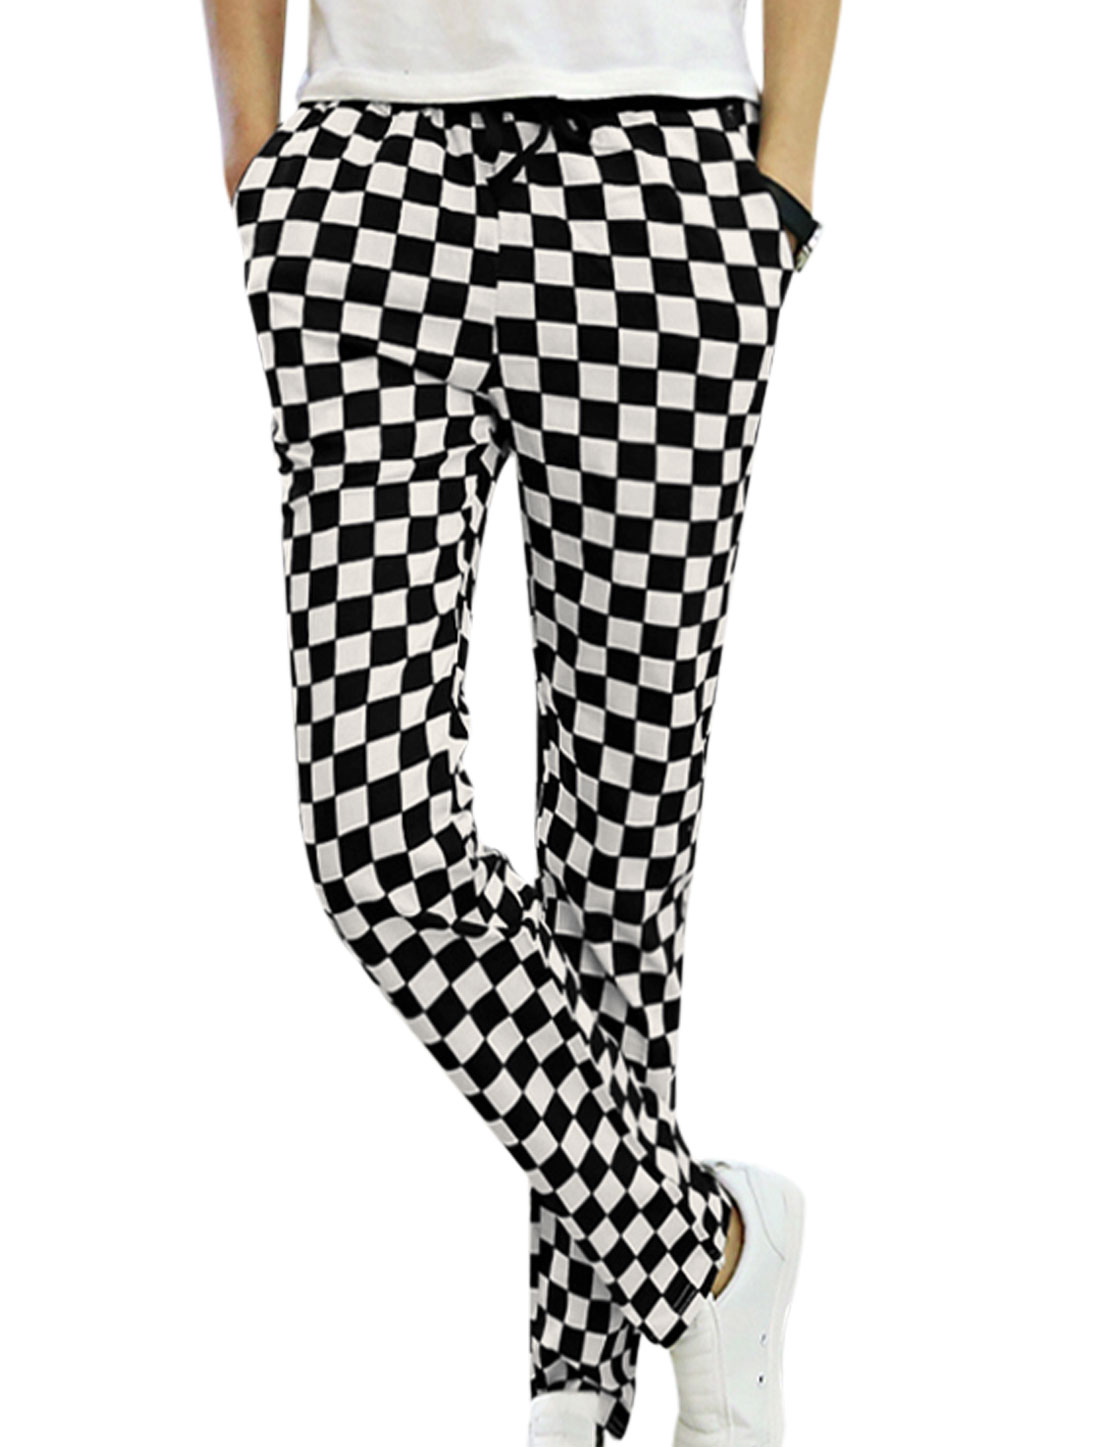 Men Trendy Checkered Pattern Elastic Waist Skinny Chic Trouser Black White W28